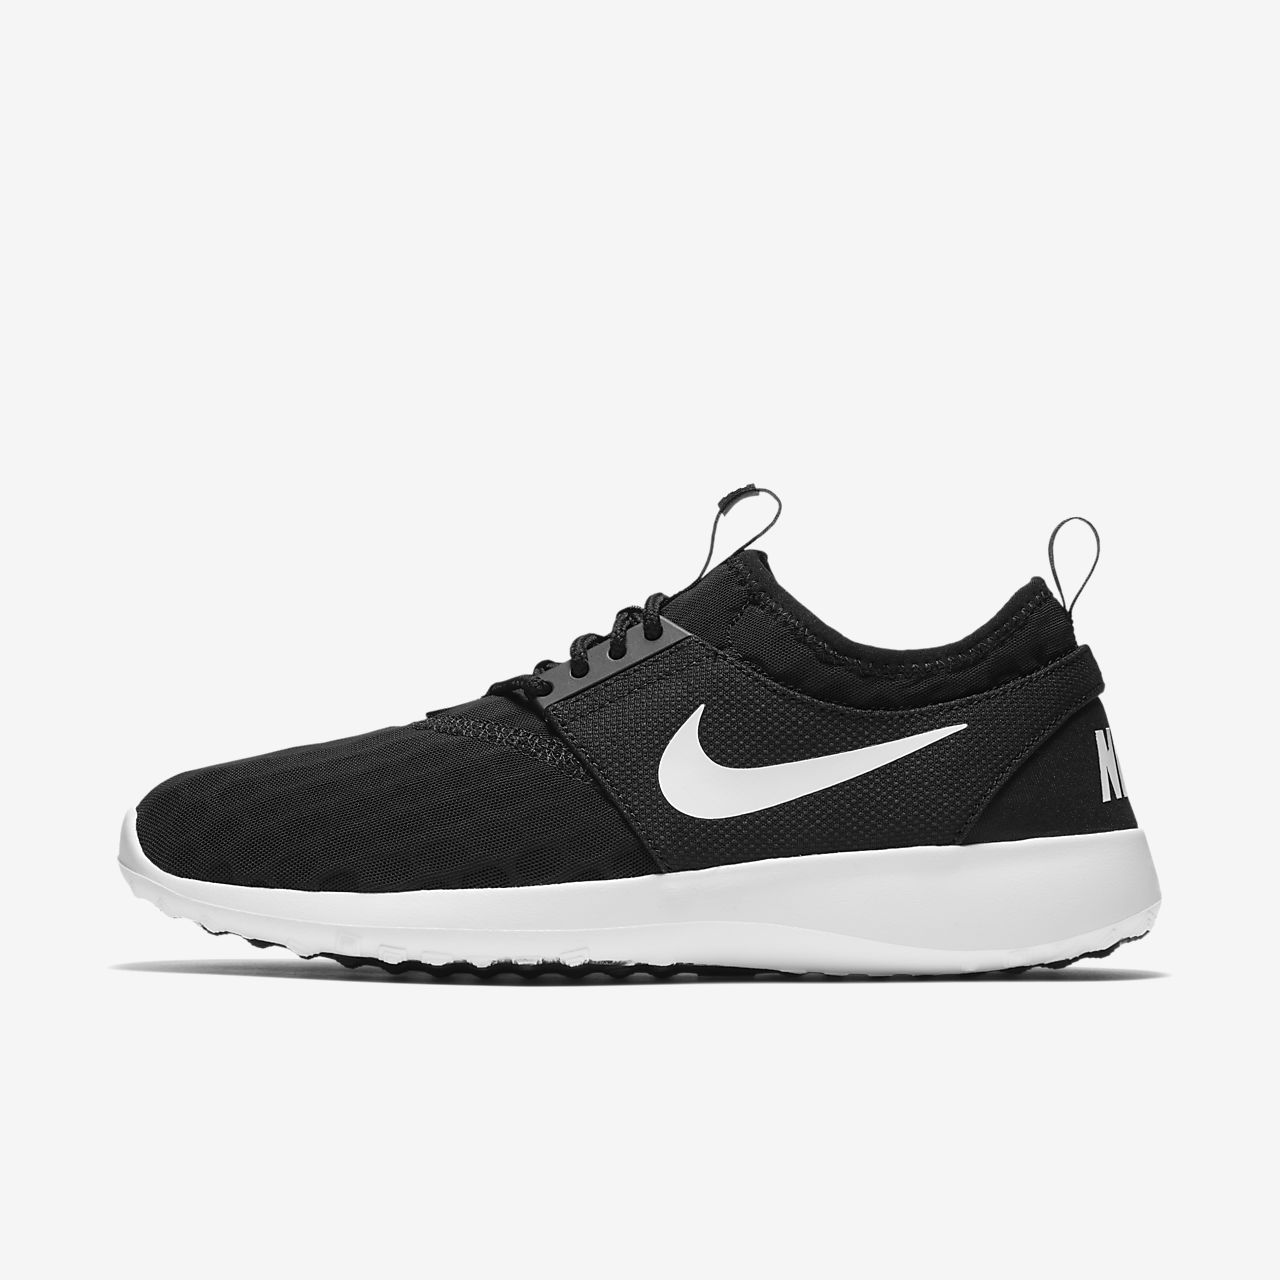 sale retailer cd39a 7b20d Low Resolution Nike Juvenate Womens Shoe Nike Juvenate Womens Shoe